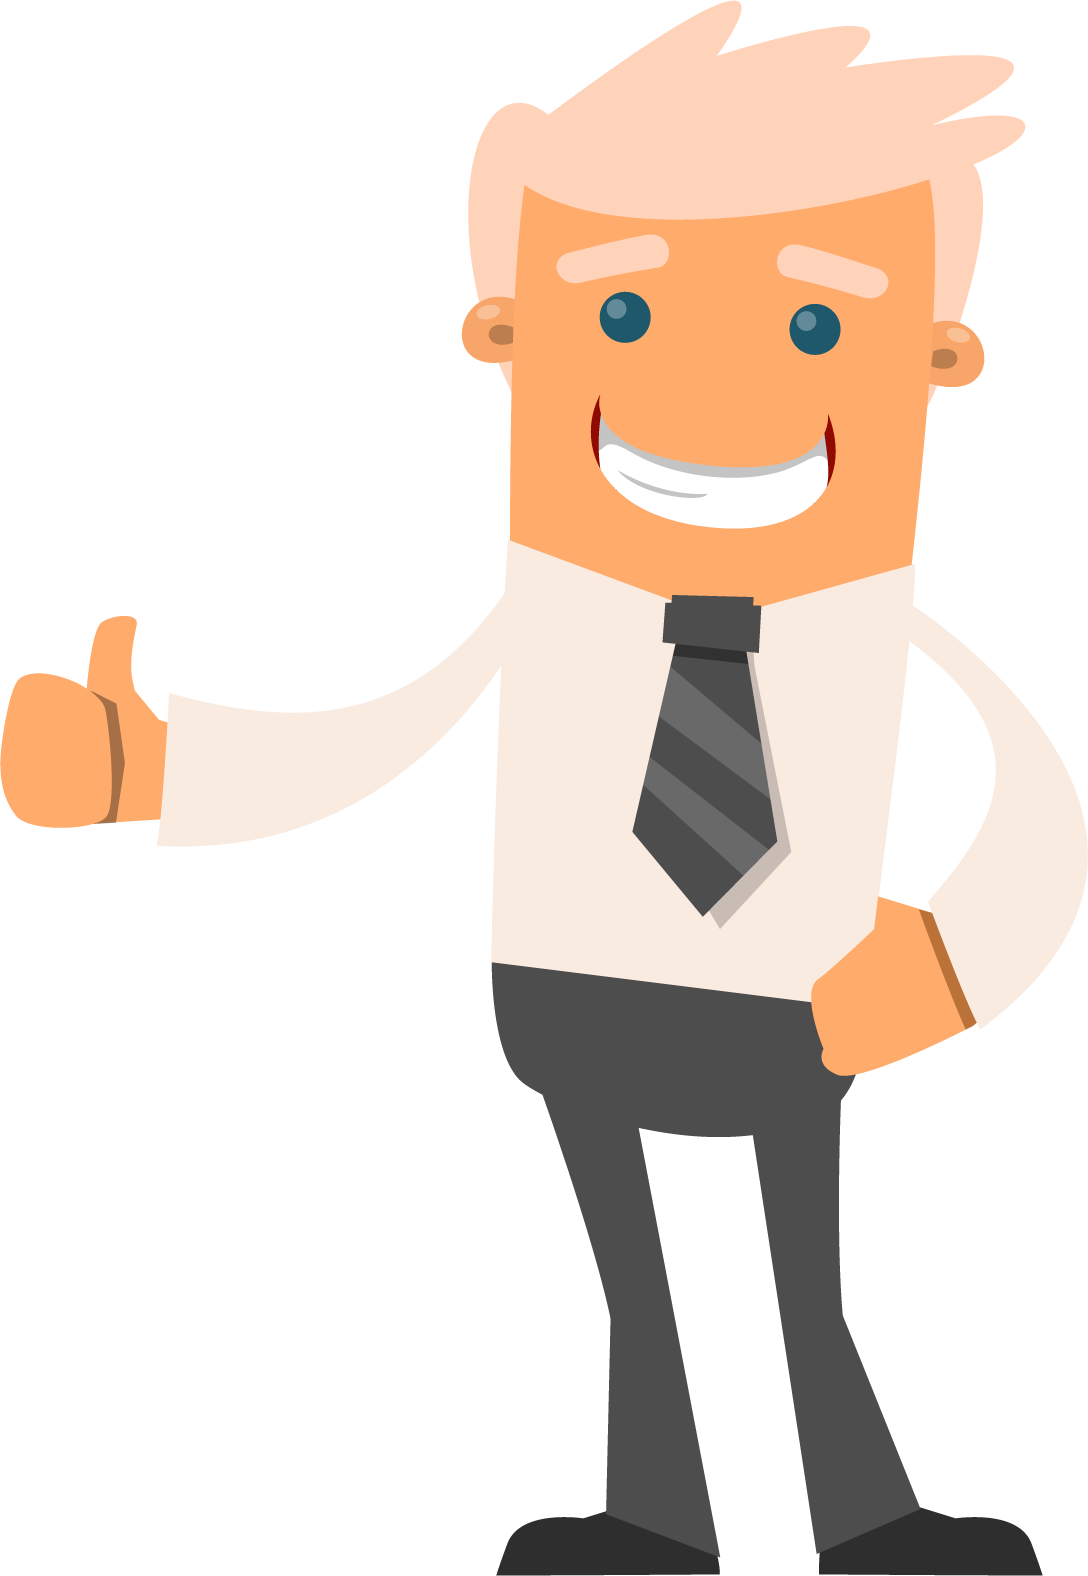 Happy man clip art clipart images gallery for free download.